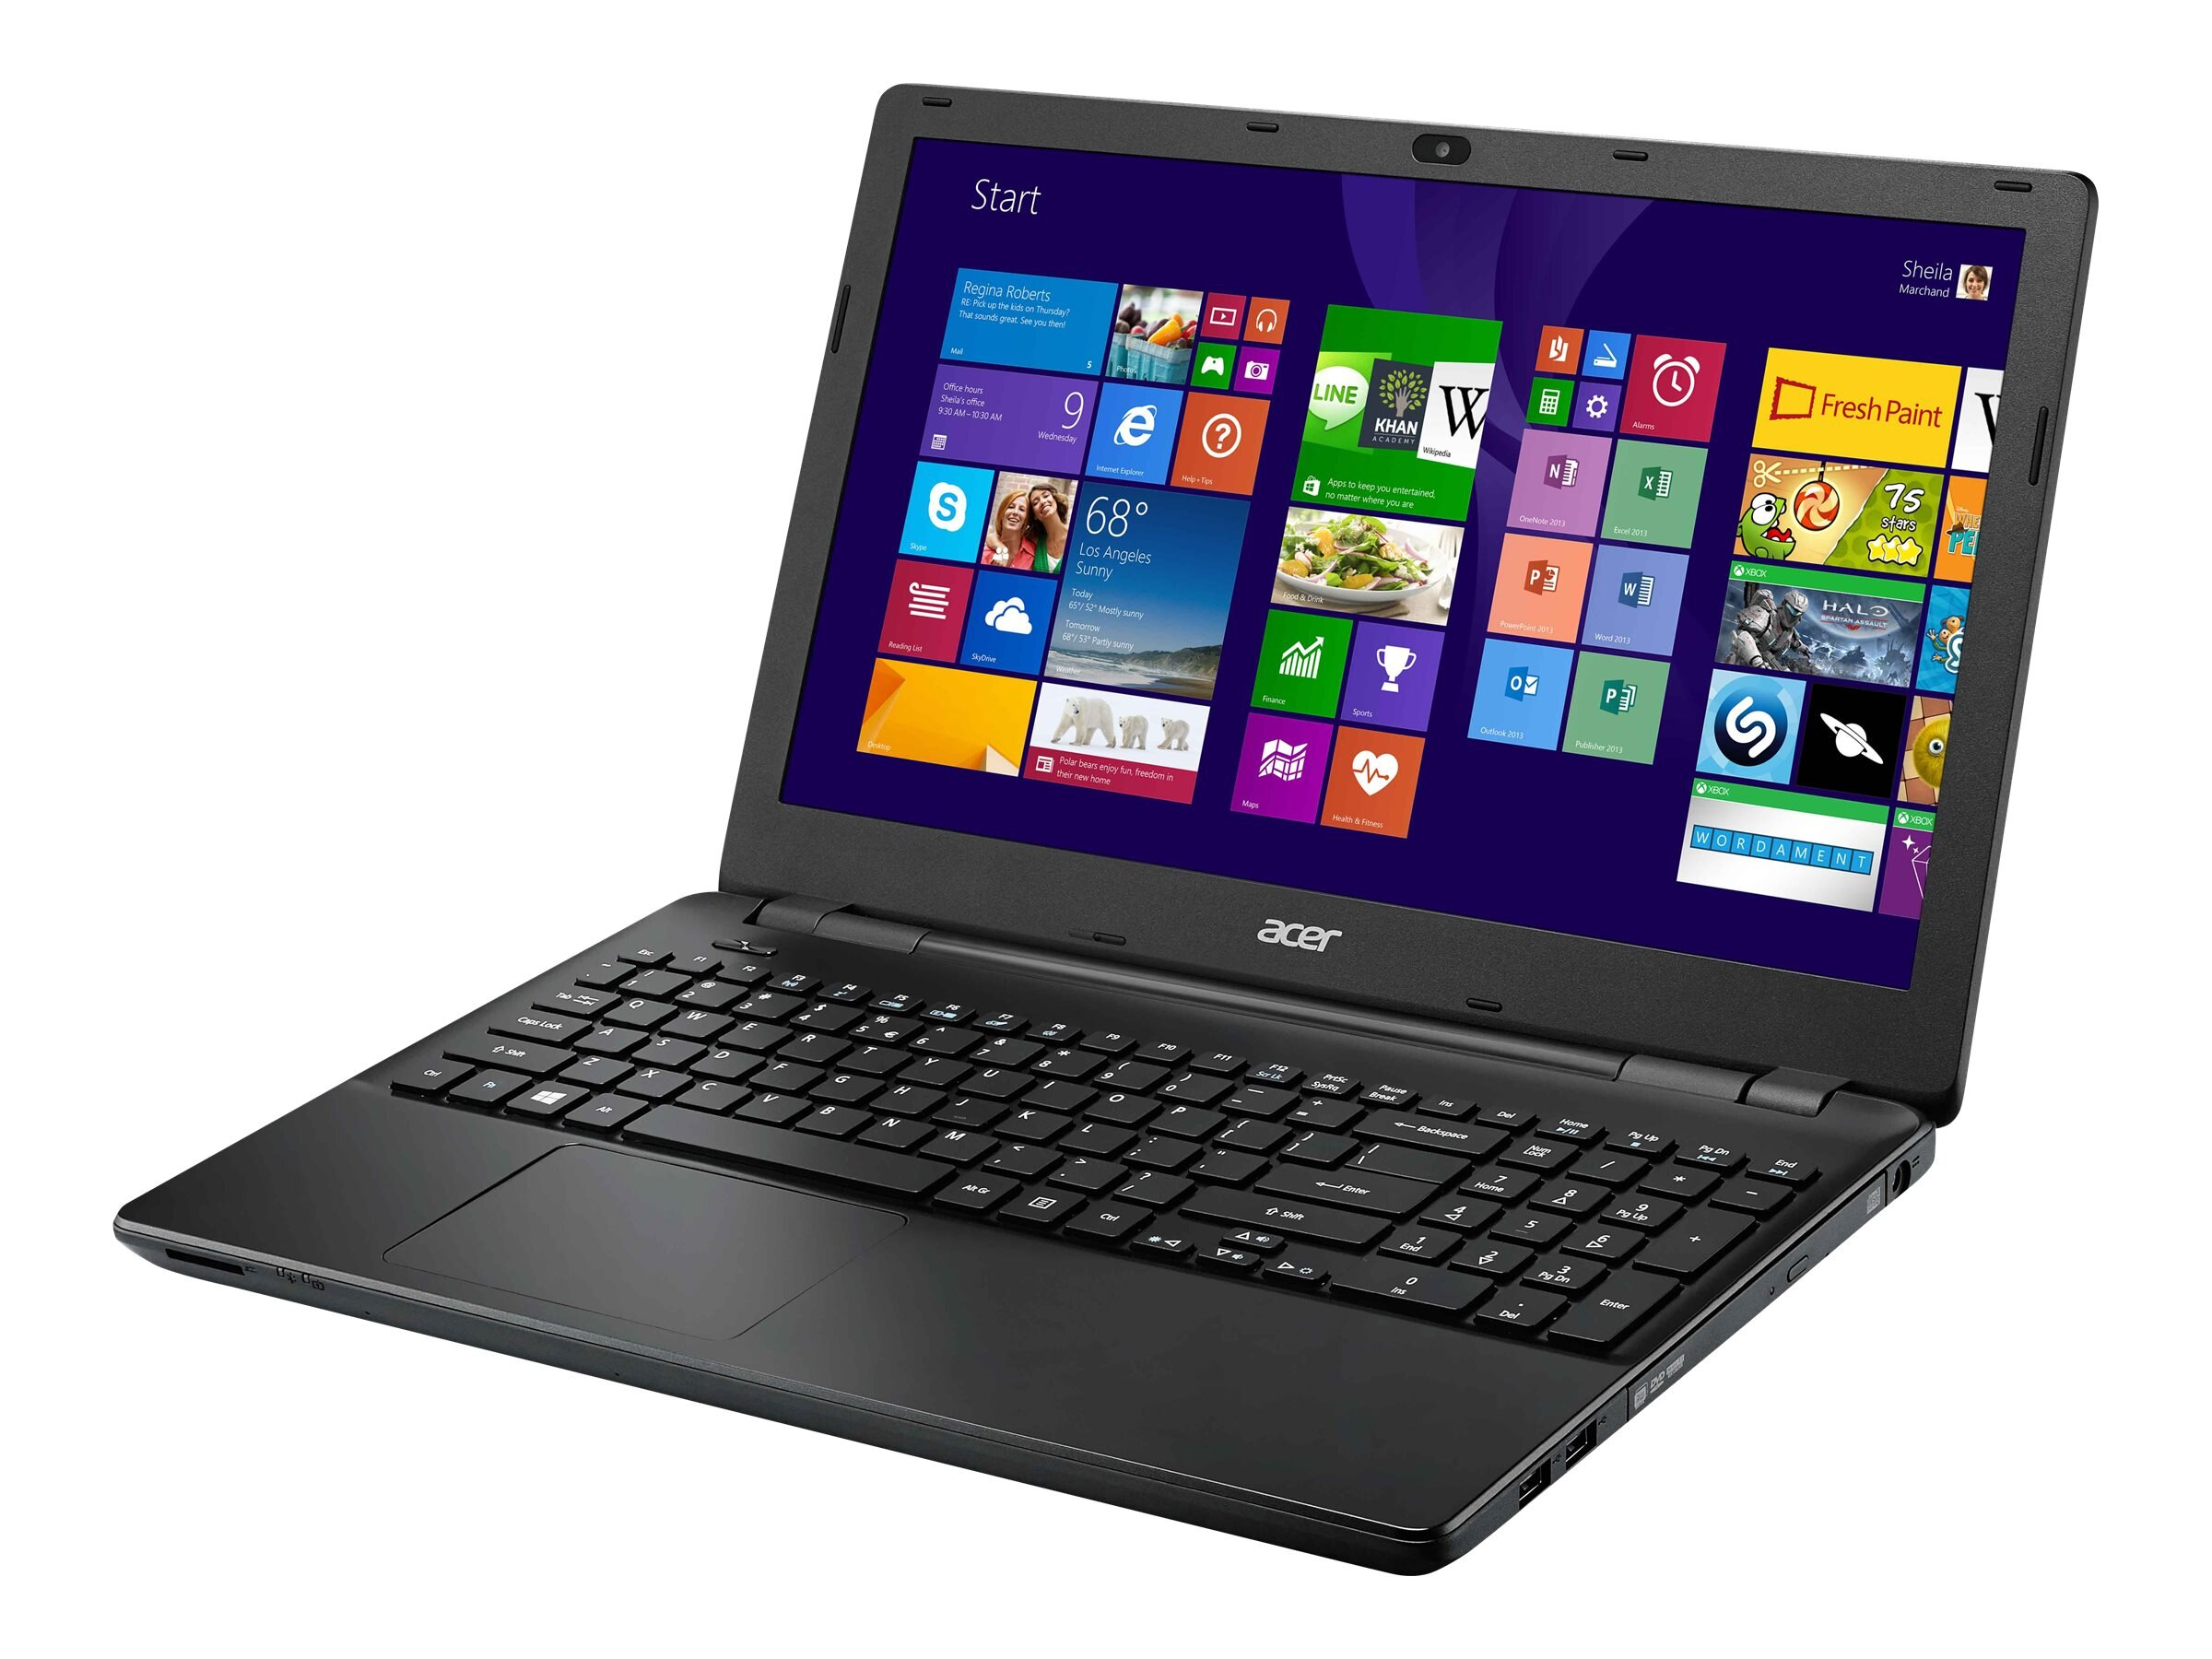 Acer TravelMate P256-M-P8YQ : 1.7GHz Pentium 15.6in display, NX.V9MAA.007, 18151384, Notebooks